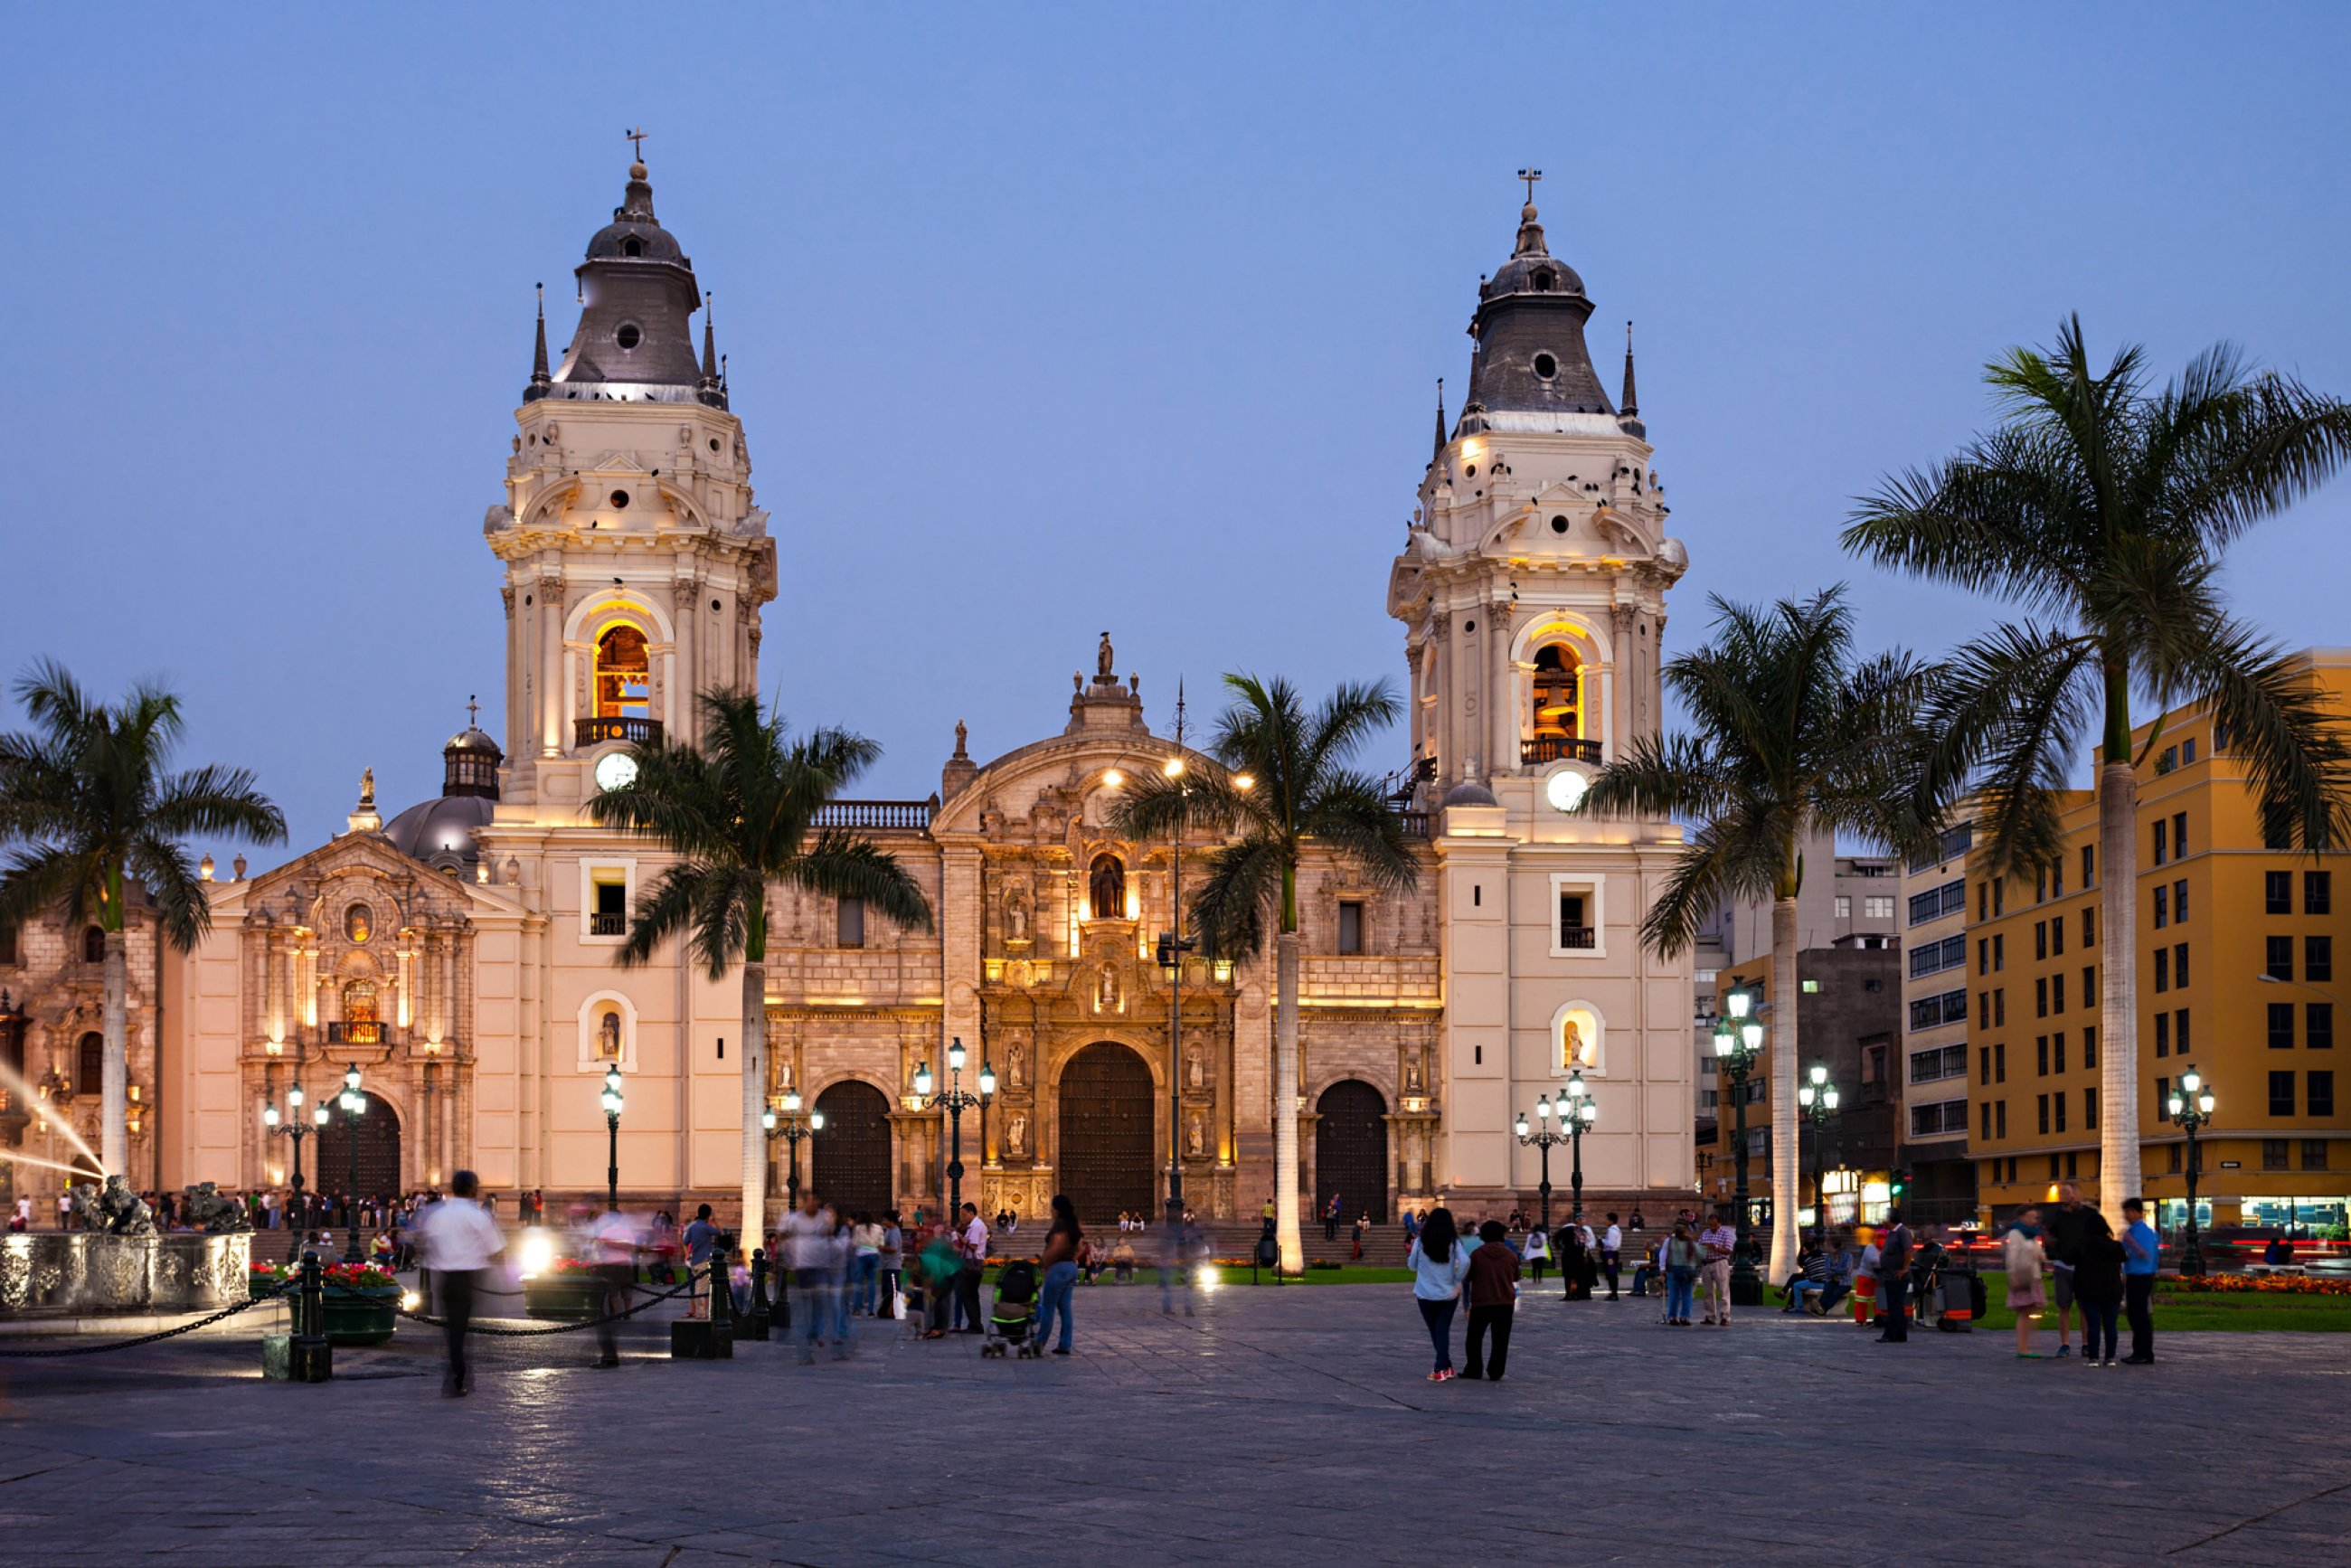 https://bubo.sk/uploads/galleries/7397/peru-lima-shutterstock-328809953.jpg